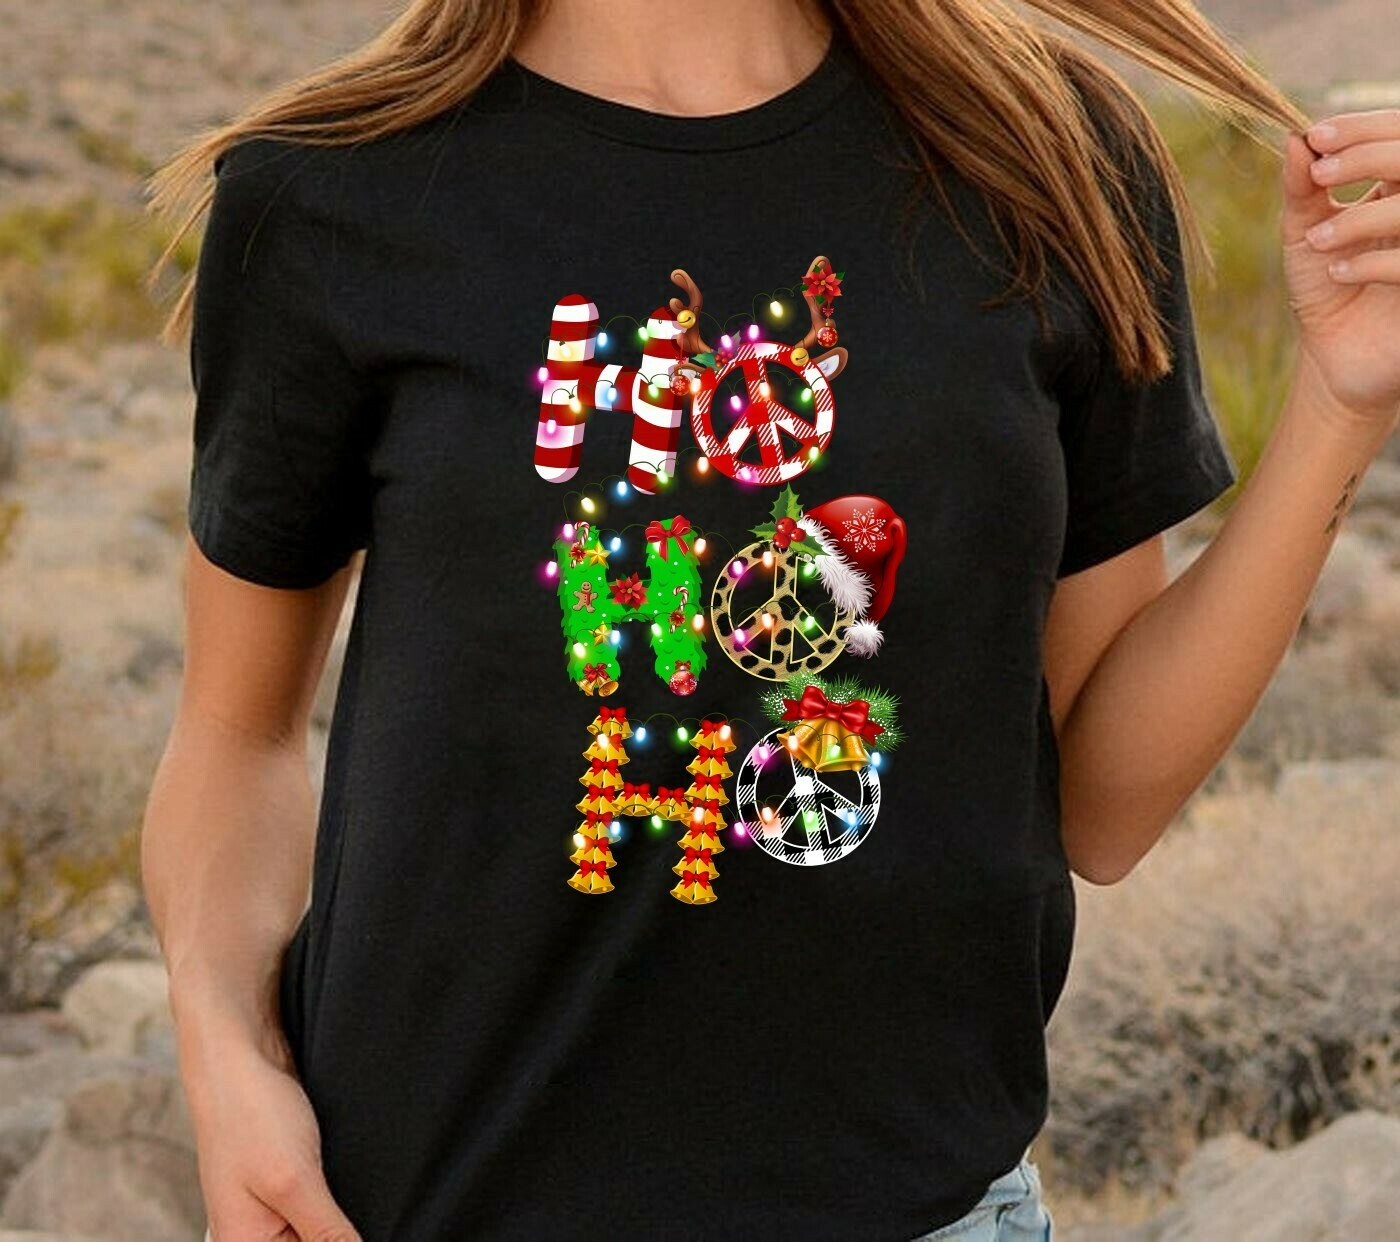 HoHoHo Reindeer,Santa Hat,Bells Christmas,Hoho Homo LGBT Ugly,Ho Power 3 Cubed Math Lovers,HoHoHo Buffalo Plaid and Cheetah T Shirt Long Sleeve Sweatshirt Hoodie Jolly Family Gifts